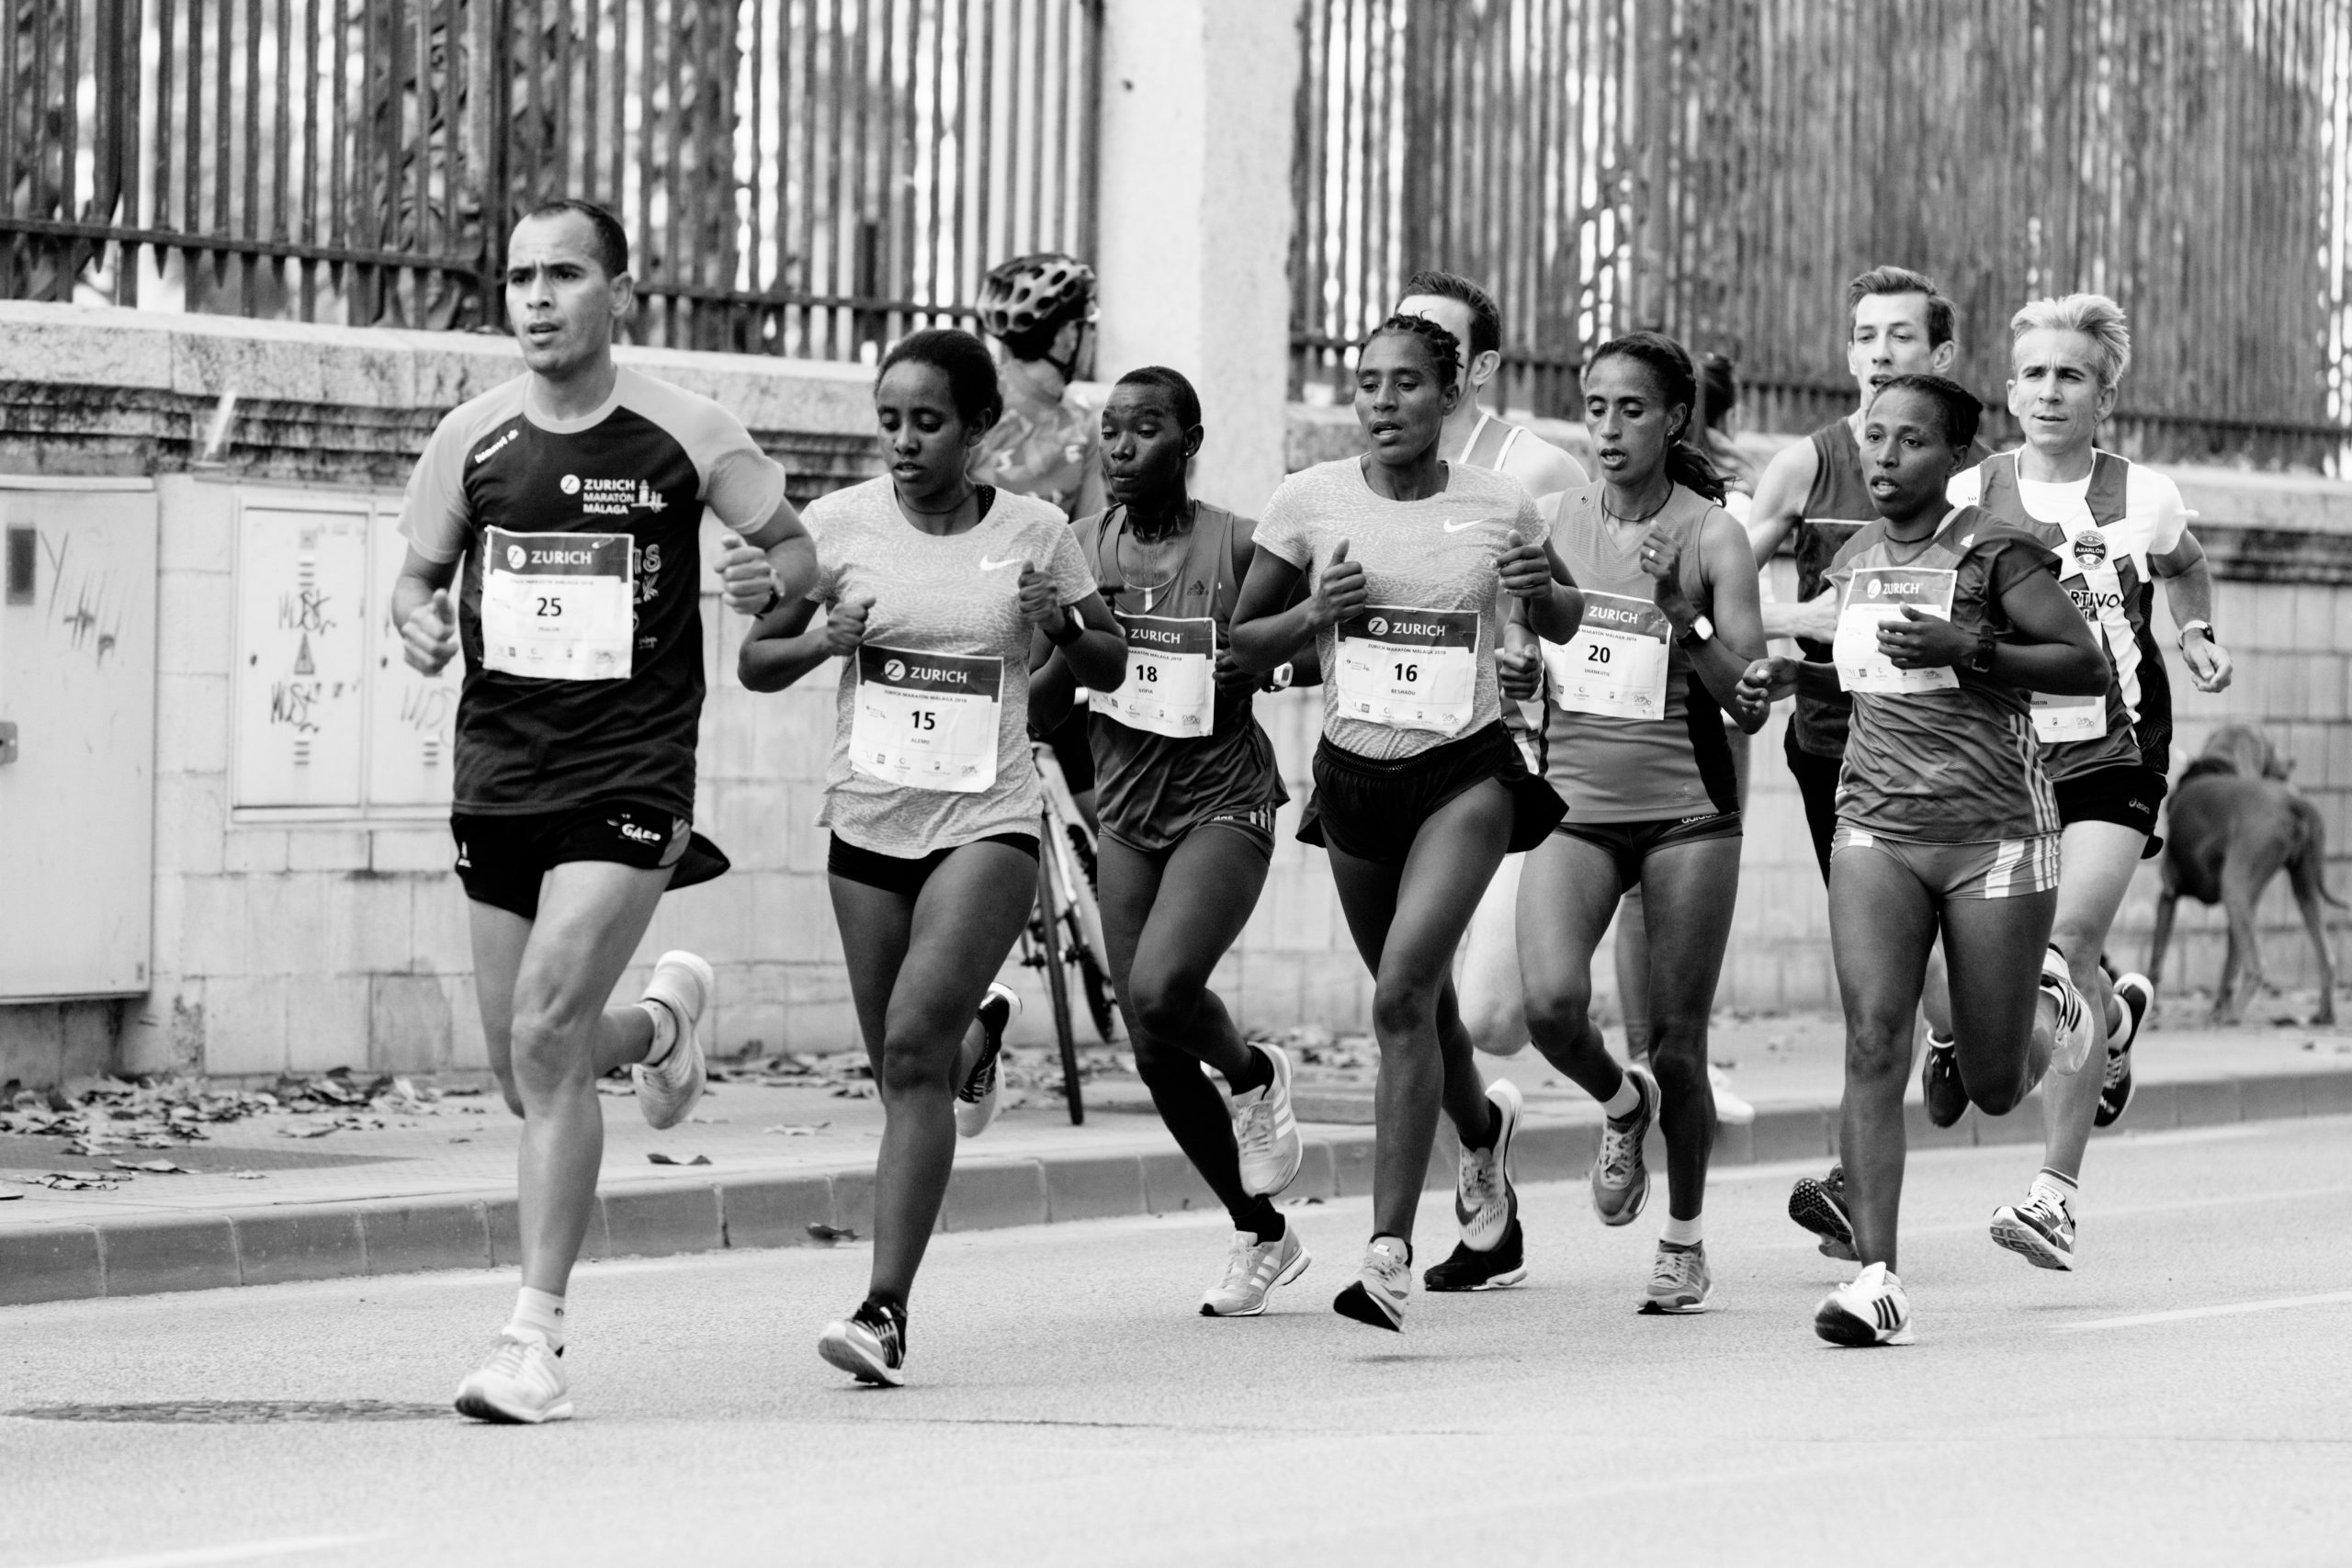 Group of Runners